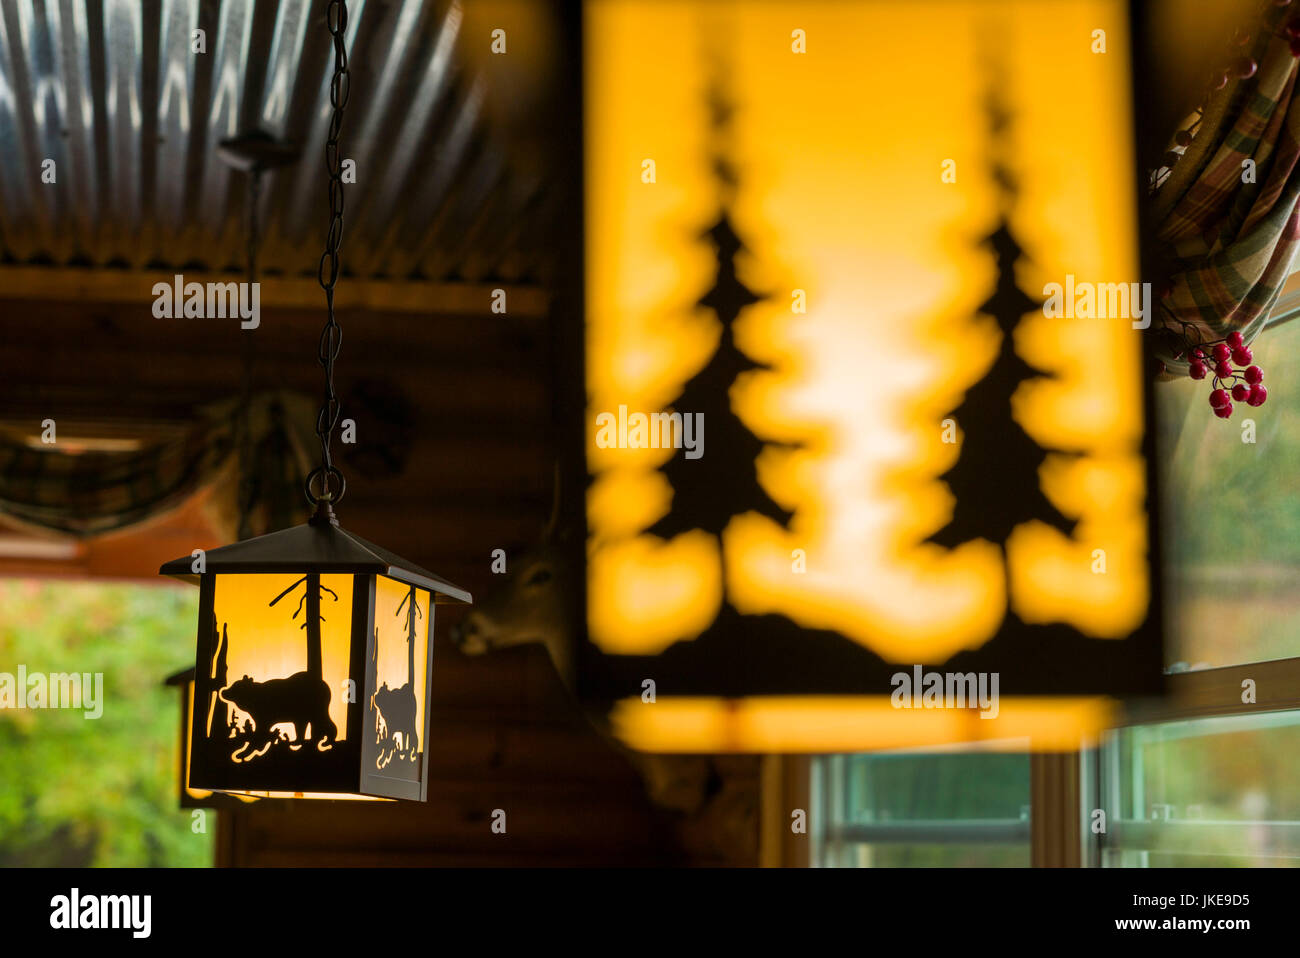 USA, New Hampshire, White Mountains, Bartlett, pine tree-themed lights in roadside diner - Stock Image